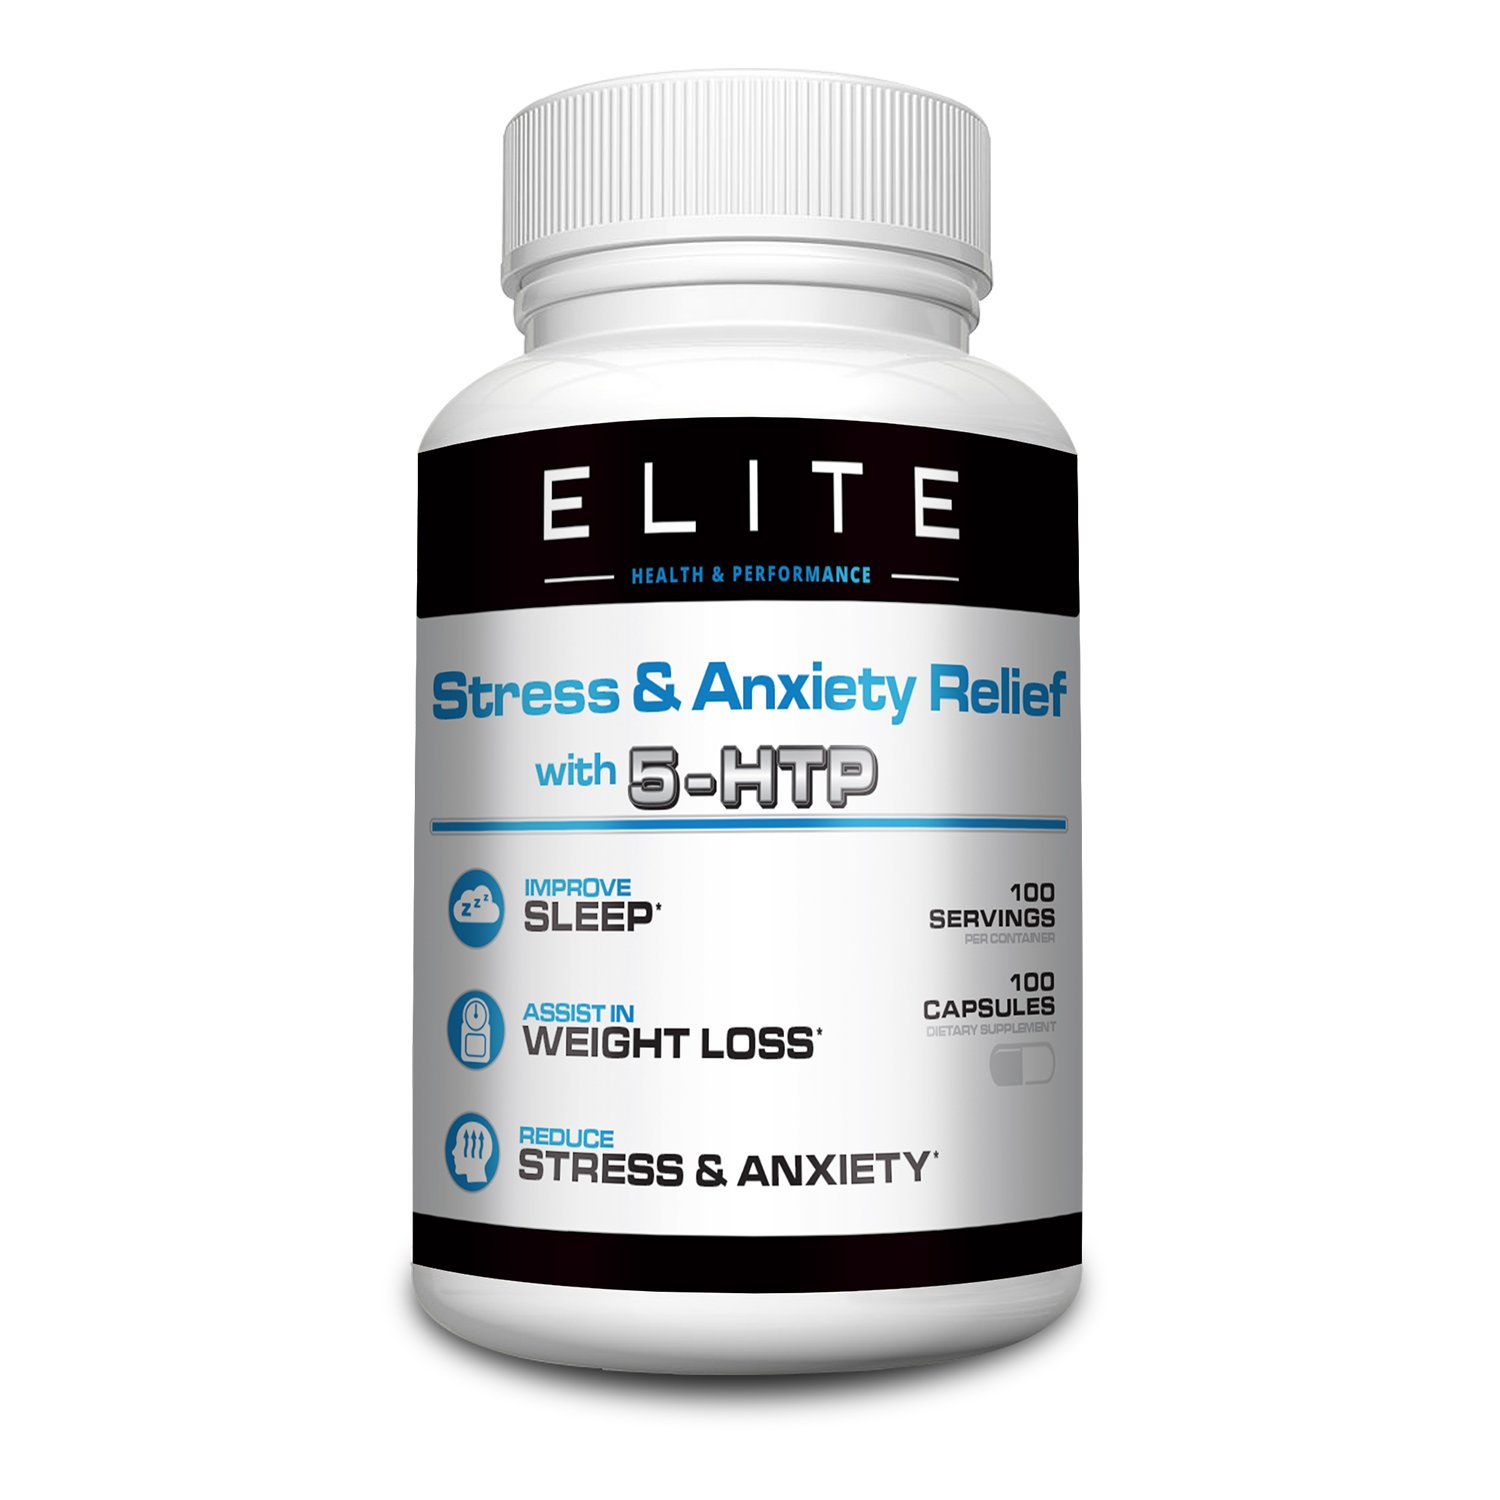 Anxiety Relief Supplement (100mg) by Elite Health and Performance — 5-HTP Stress Relief — Appetite Control — Improves Sleep, Mood & Focus — 100 Capsules — BONUS: 2 Free EBooks